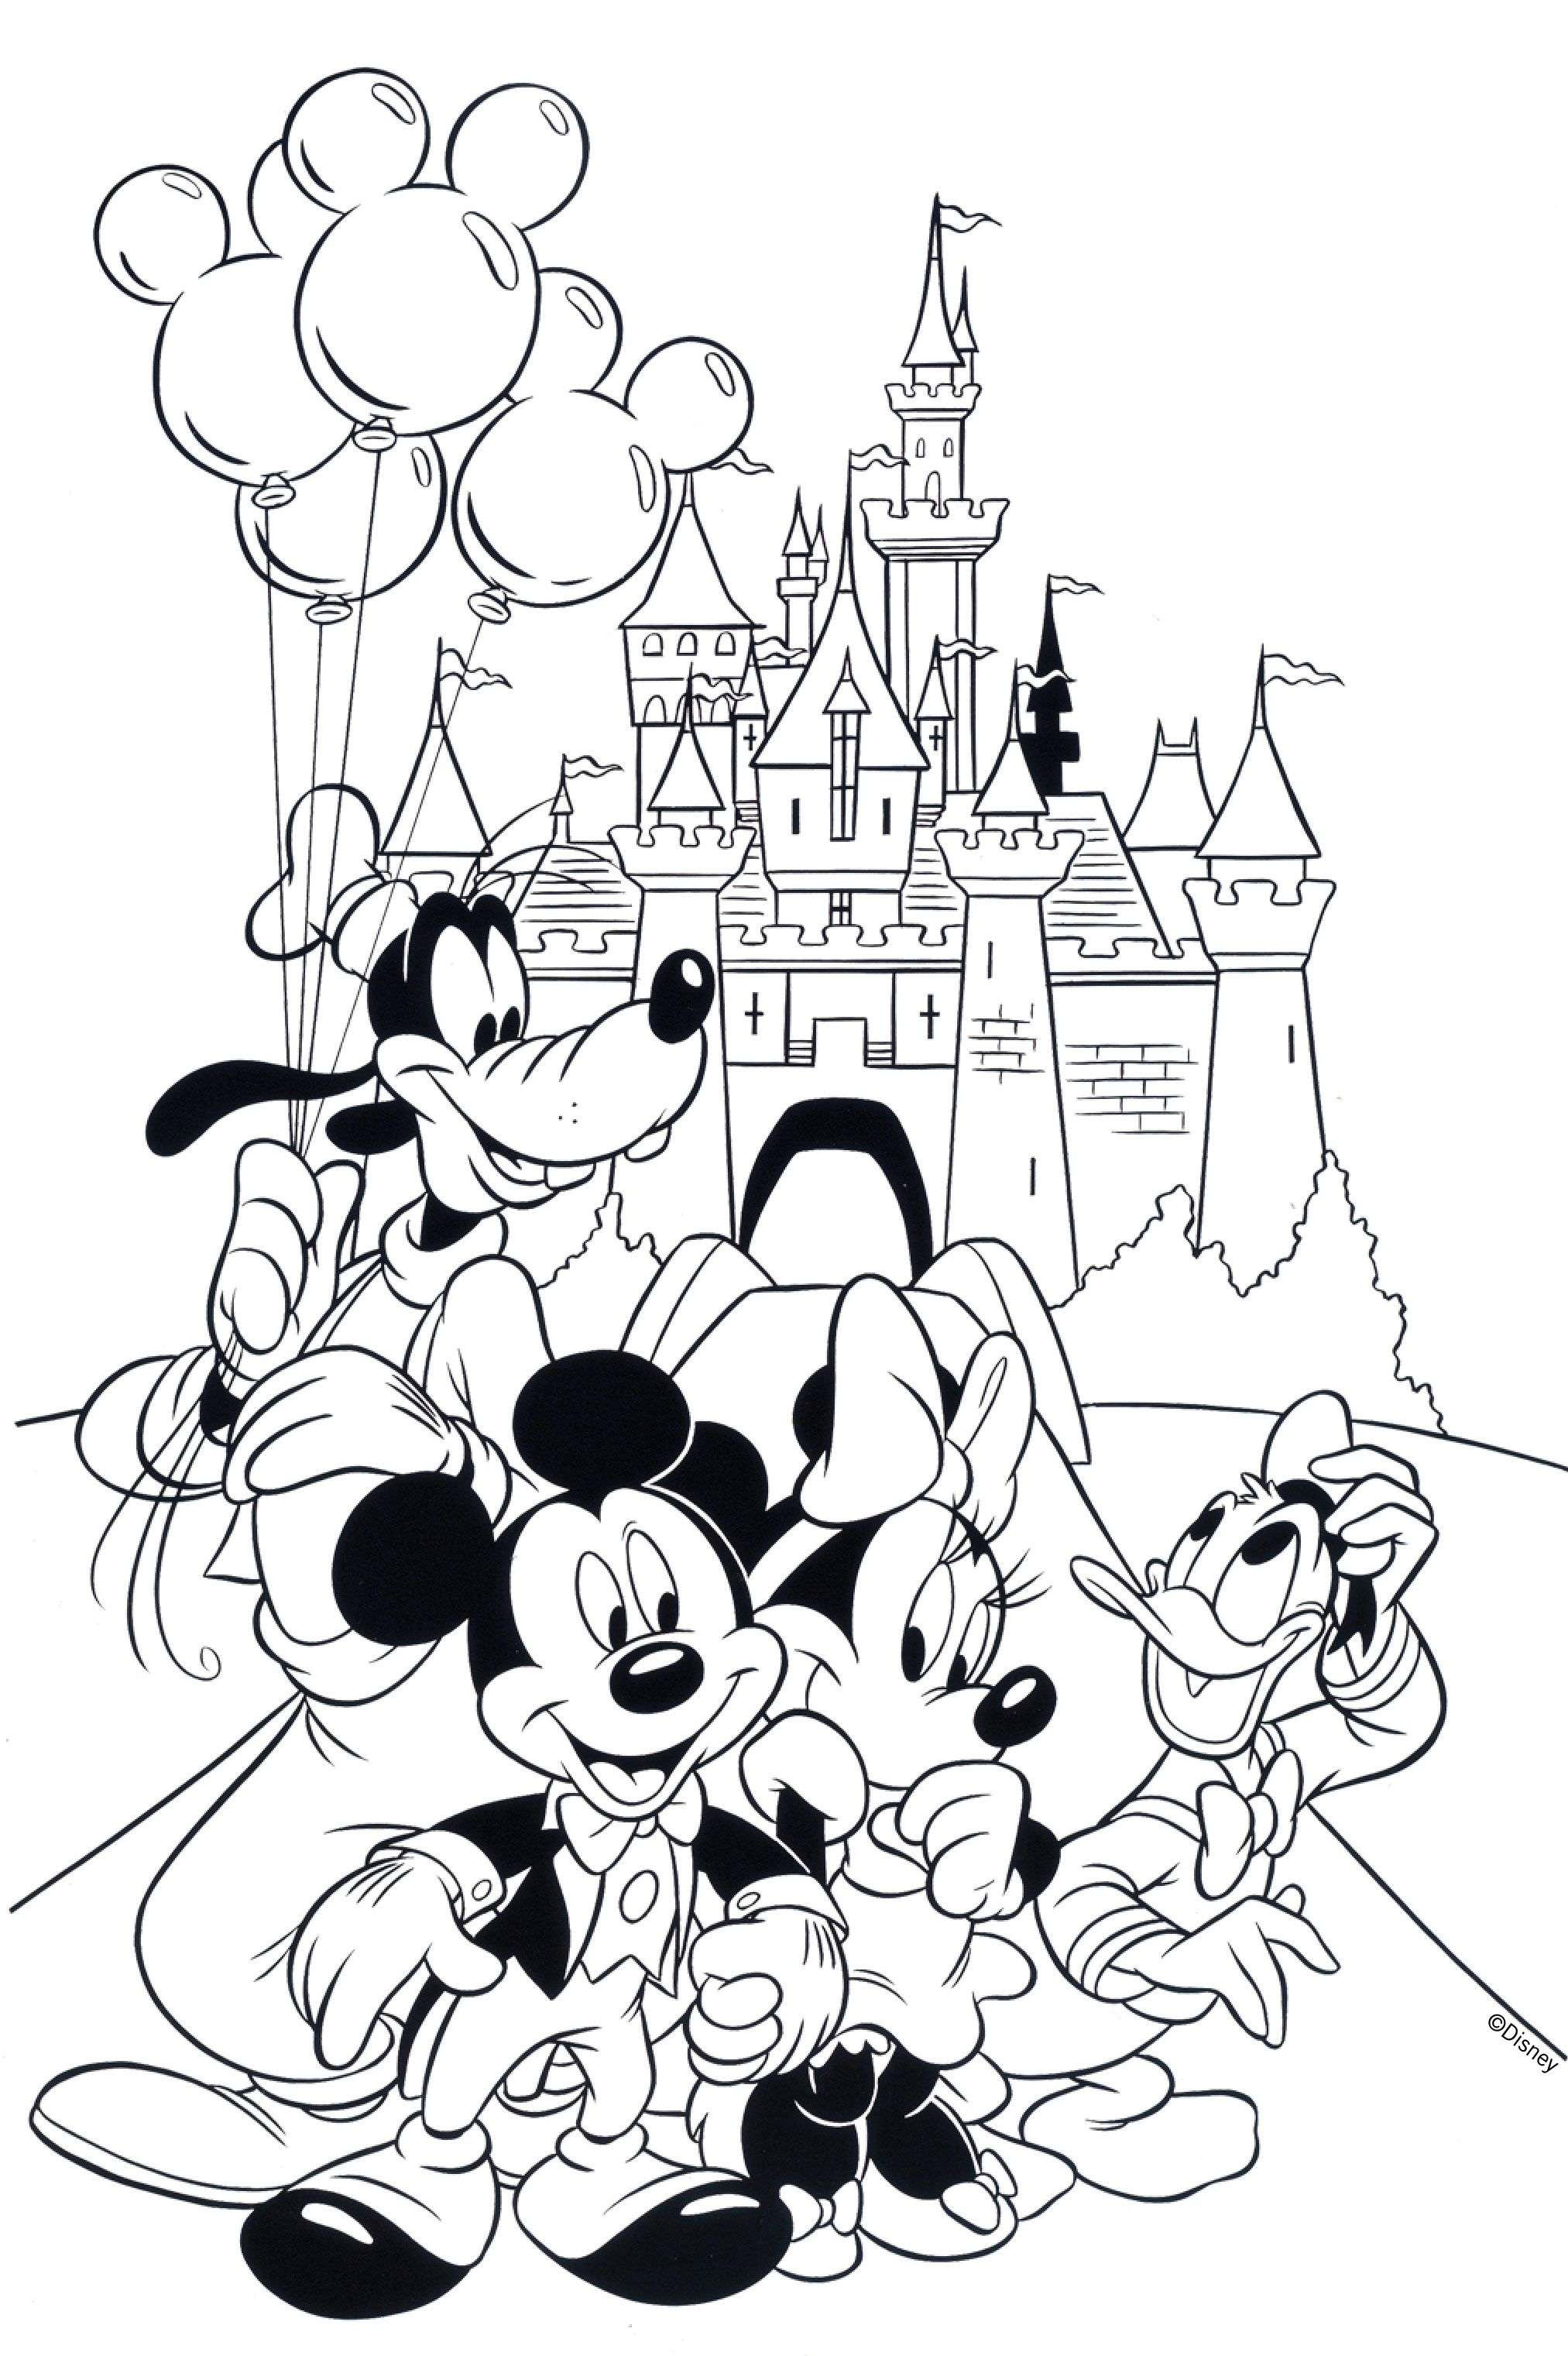 Free Mickey Christmas Coloring Pages With Of And Minnie Mouse Book